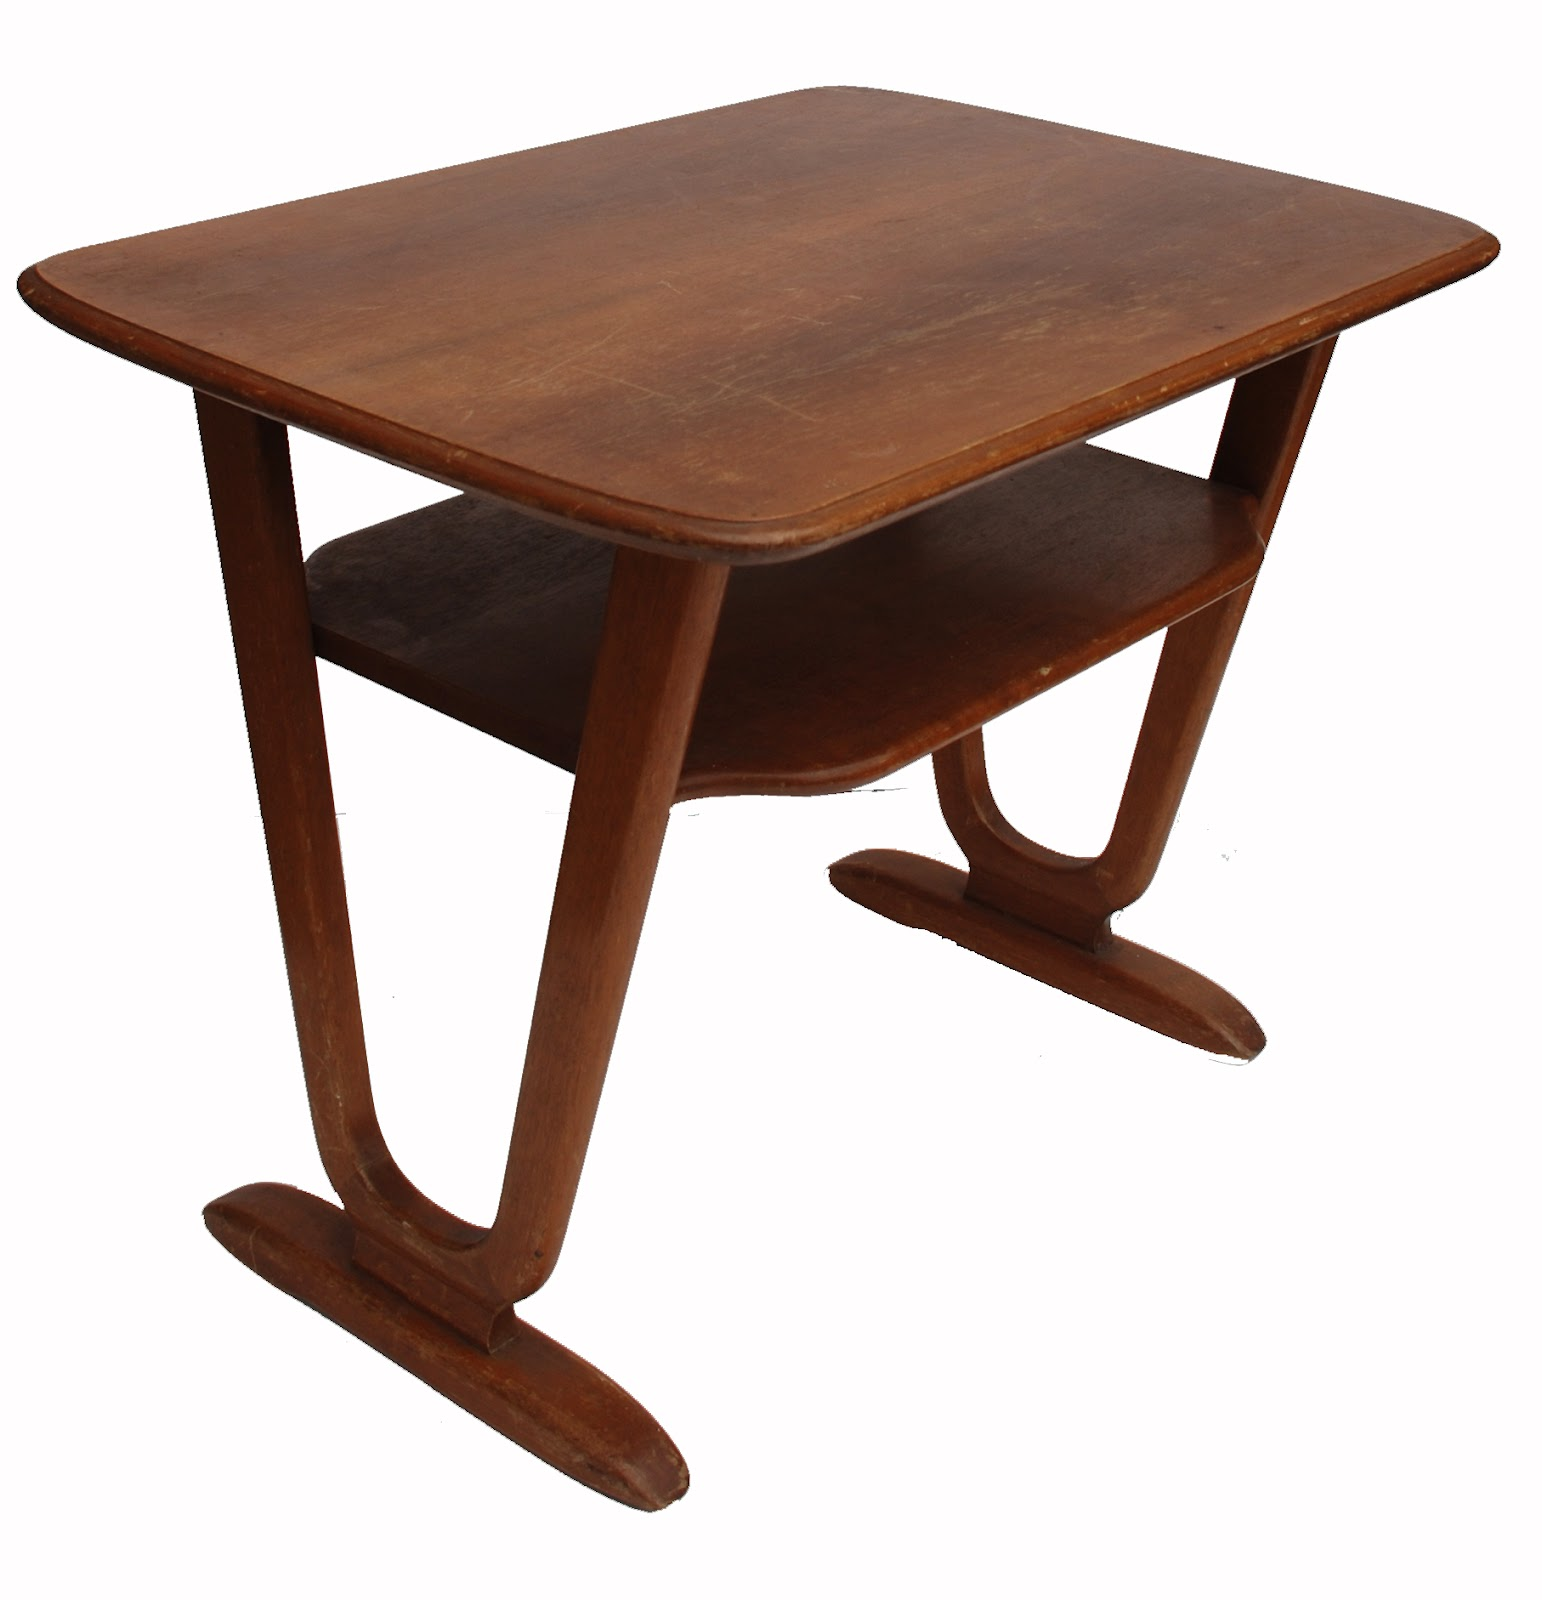 Bo vintage table basse moderniste ann es 50 60 - Table basse scandinave annee 50 ...